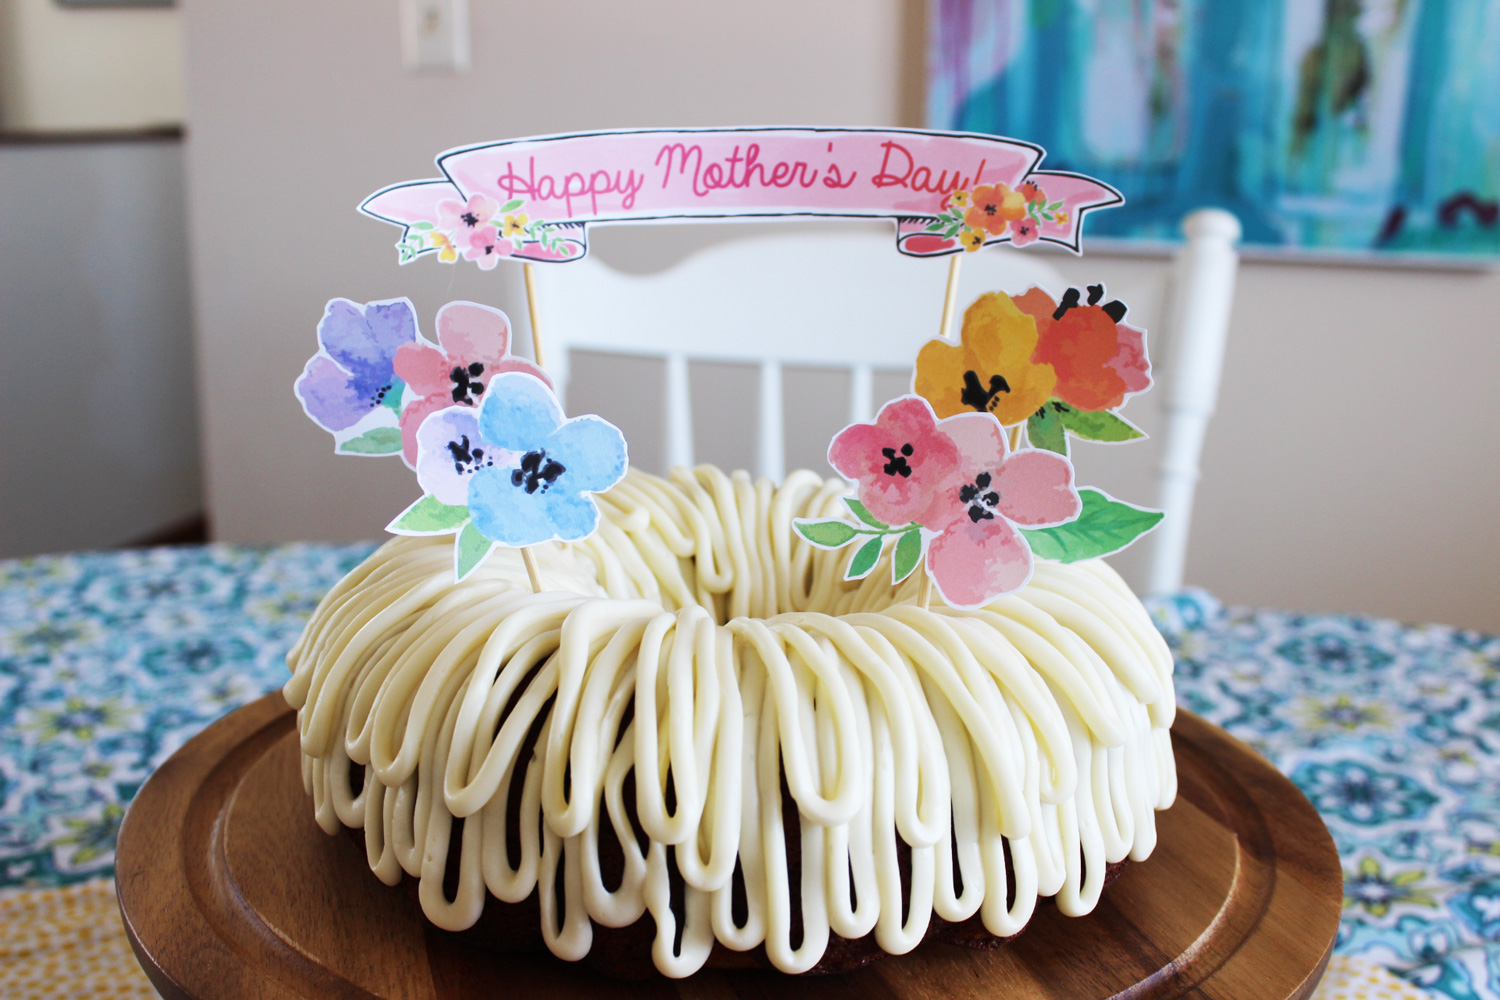 Top 5 Diy Mother S Day Cake Ideas All With Free Printable Toppers